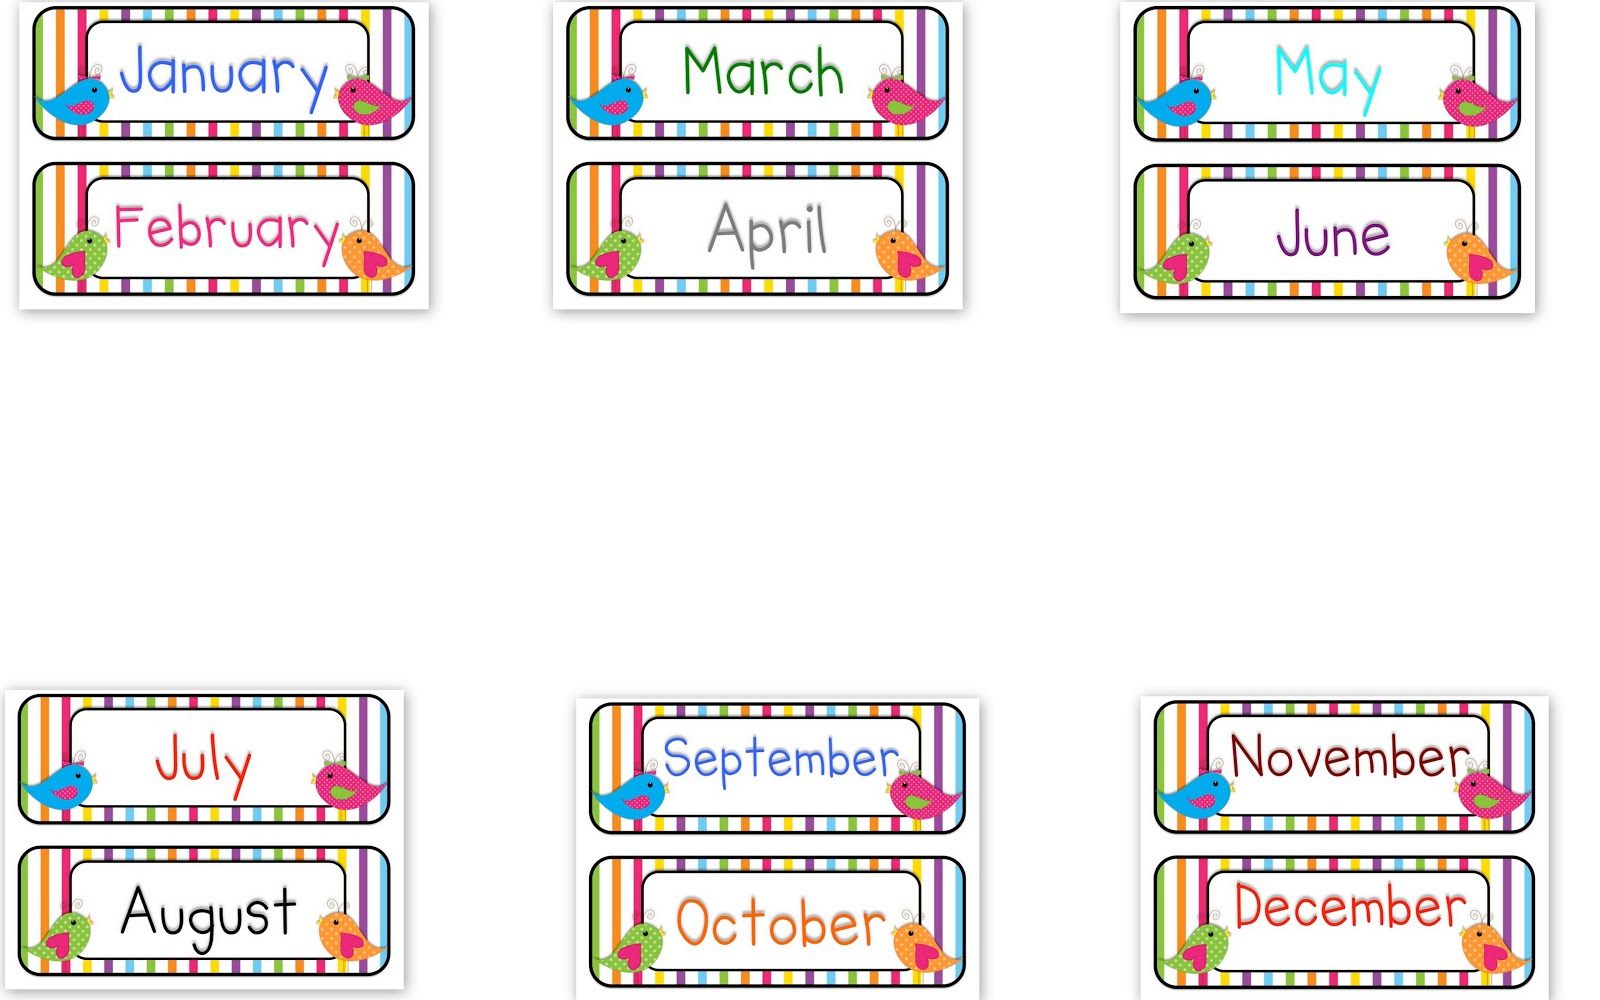 Months of Year Clip Art